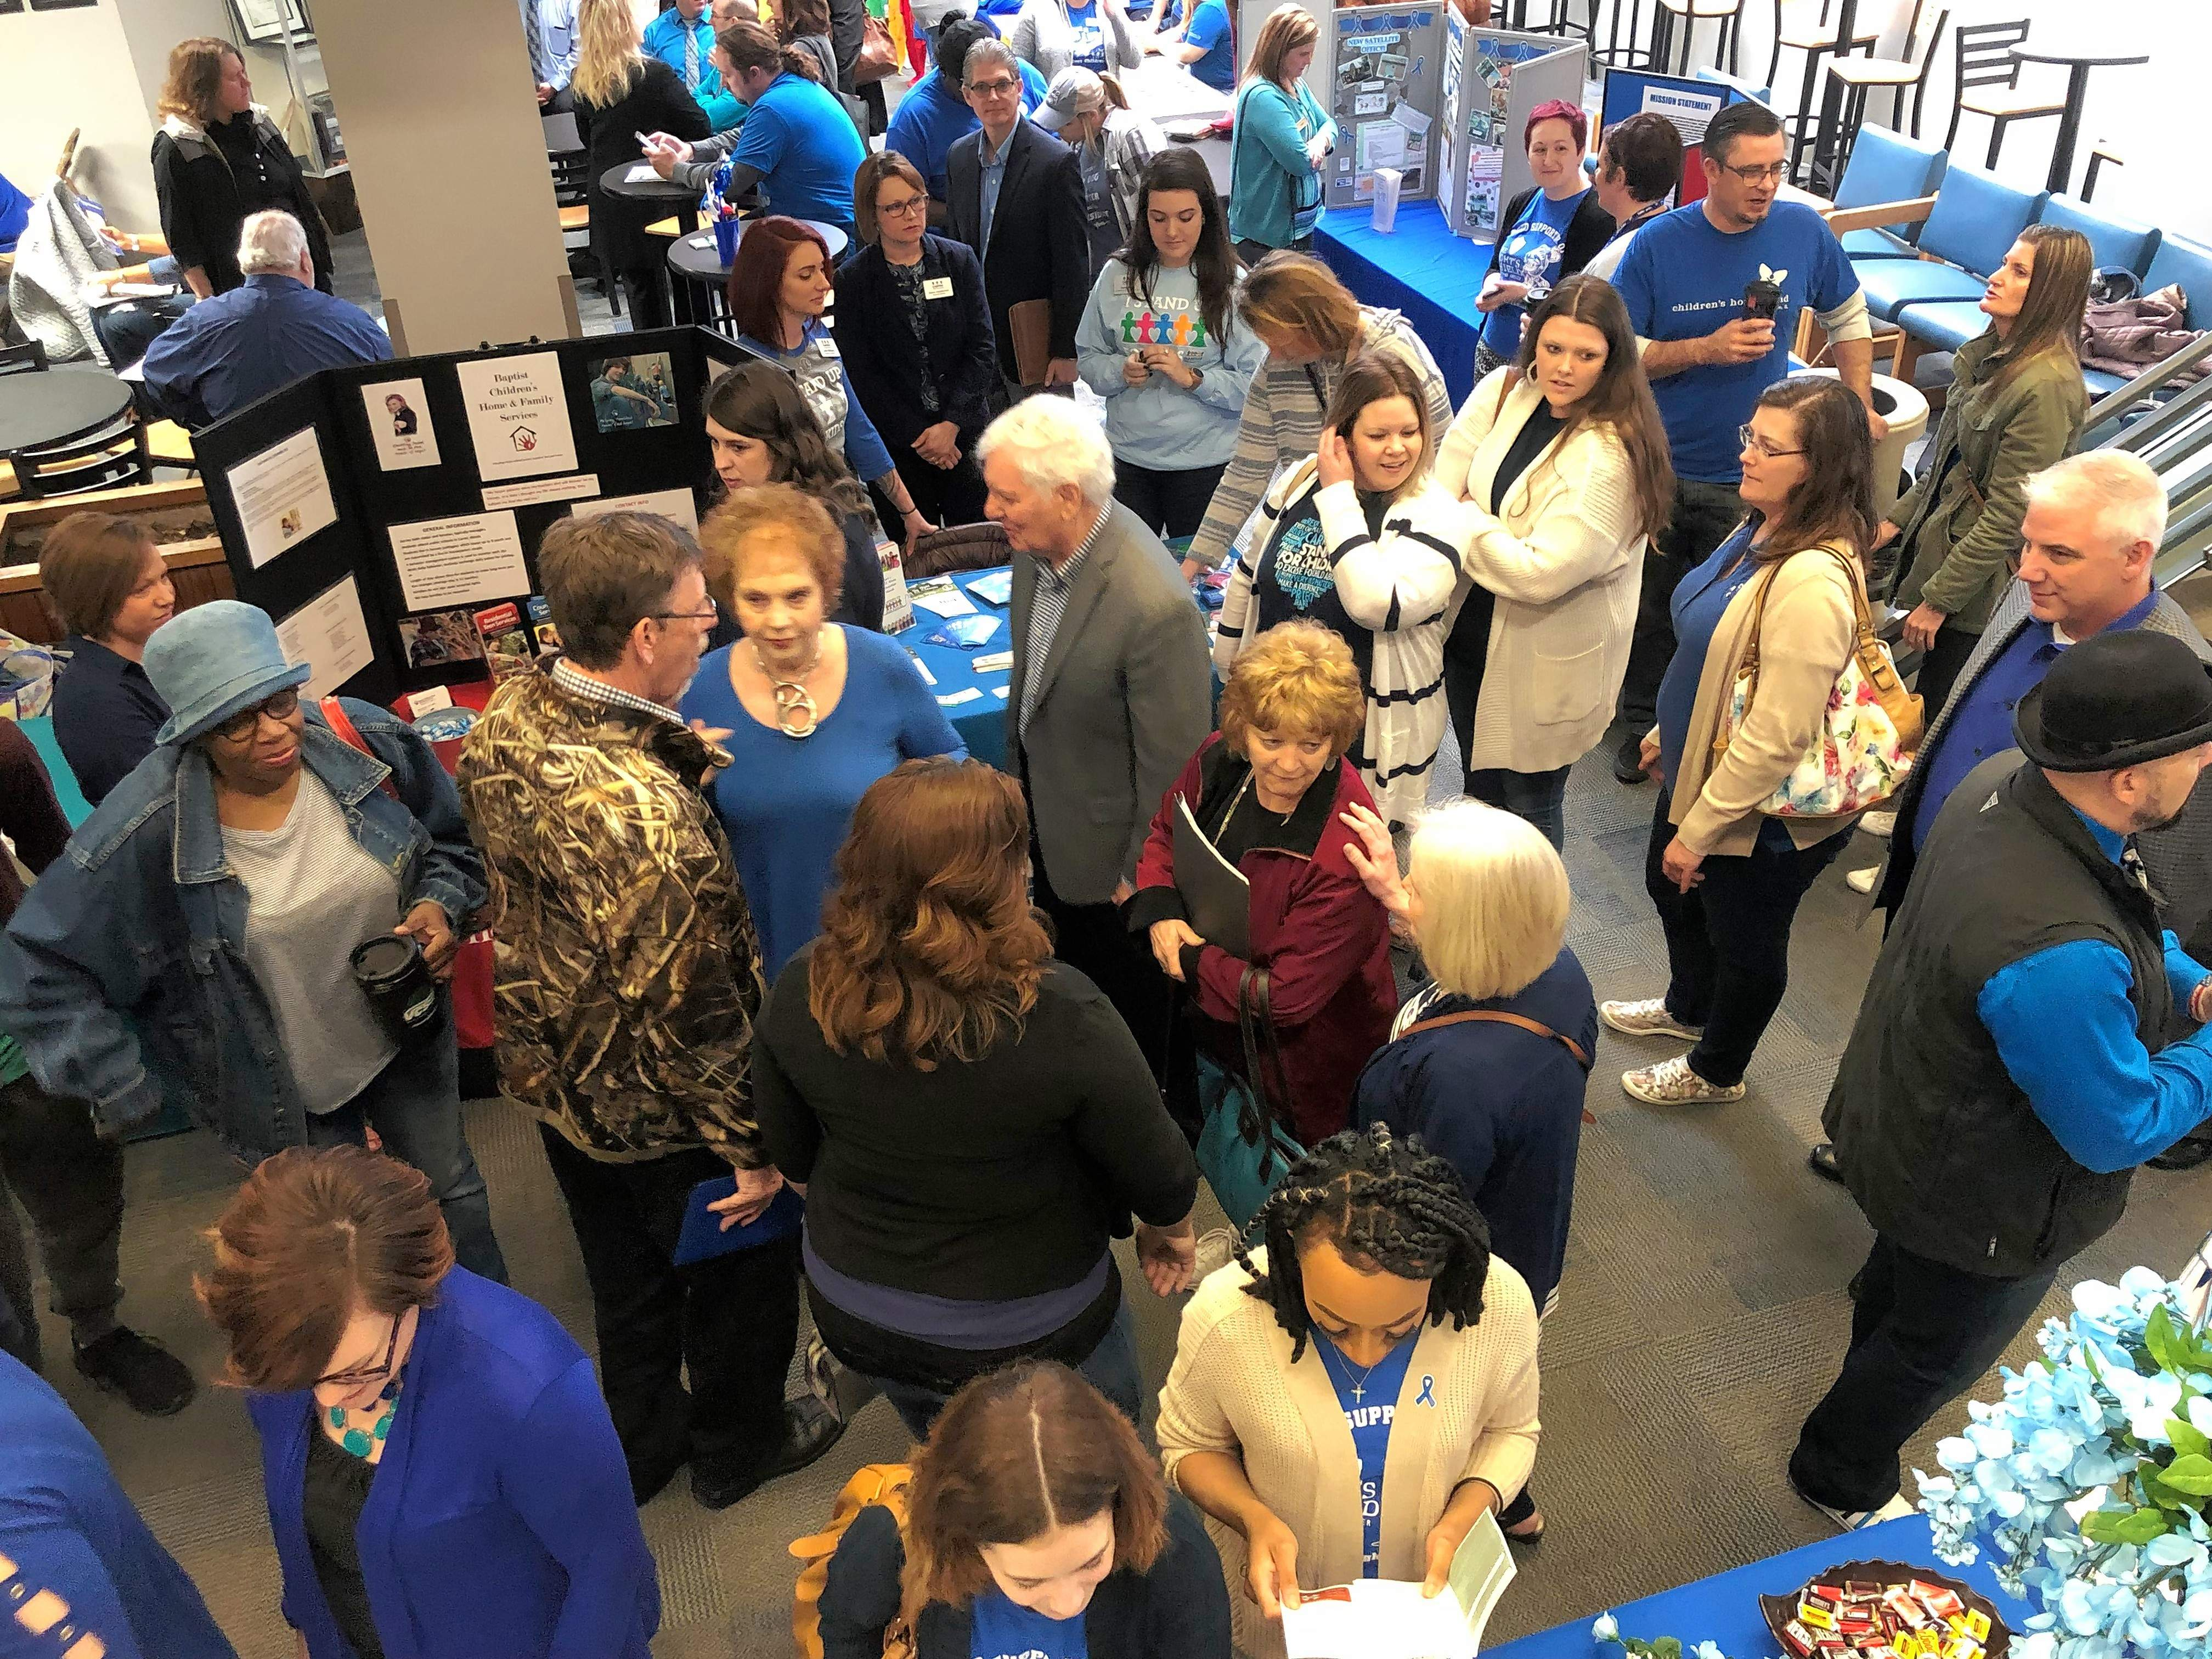 """Jo and Glenn Poshard, center, make their way through the crowd that gathered for the kickoff for """"Child Abuse Prevention Month,"""" hosted by the Poshard Foundation for Abused Children at John A. Logan College on Friday."""